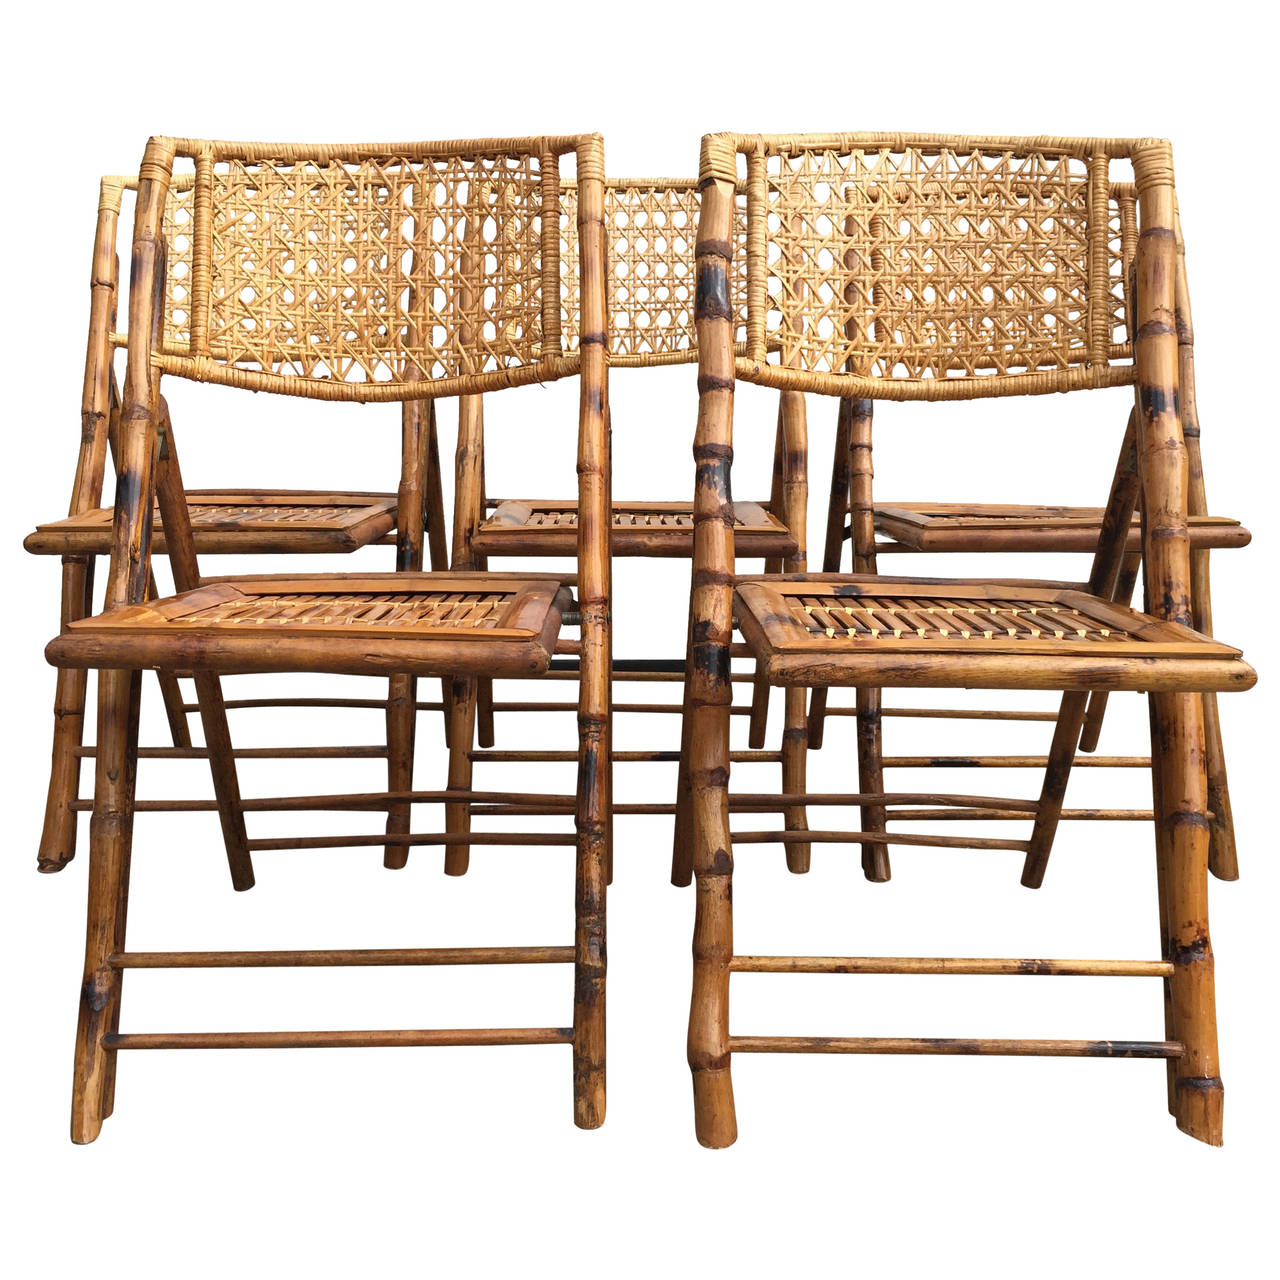 bamboo rattan chair oversized corner set of five scorched frame folding chairs with